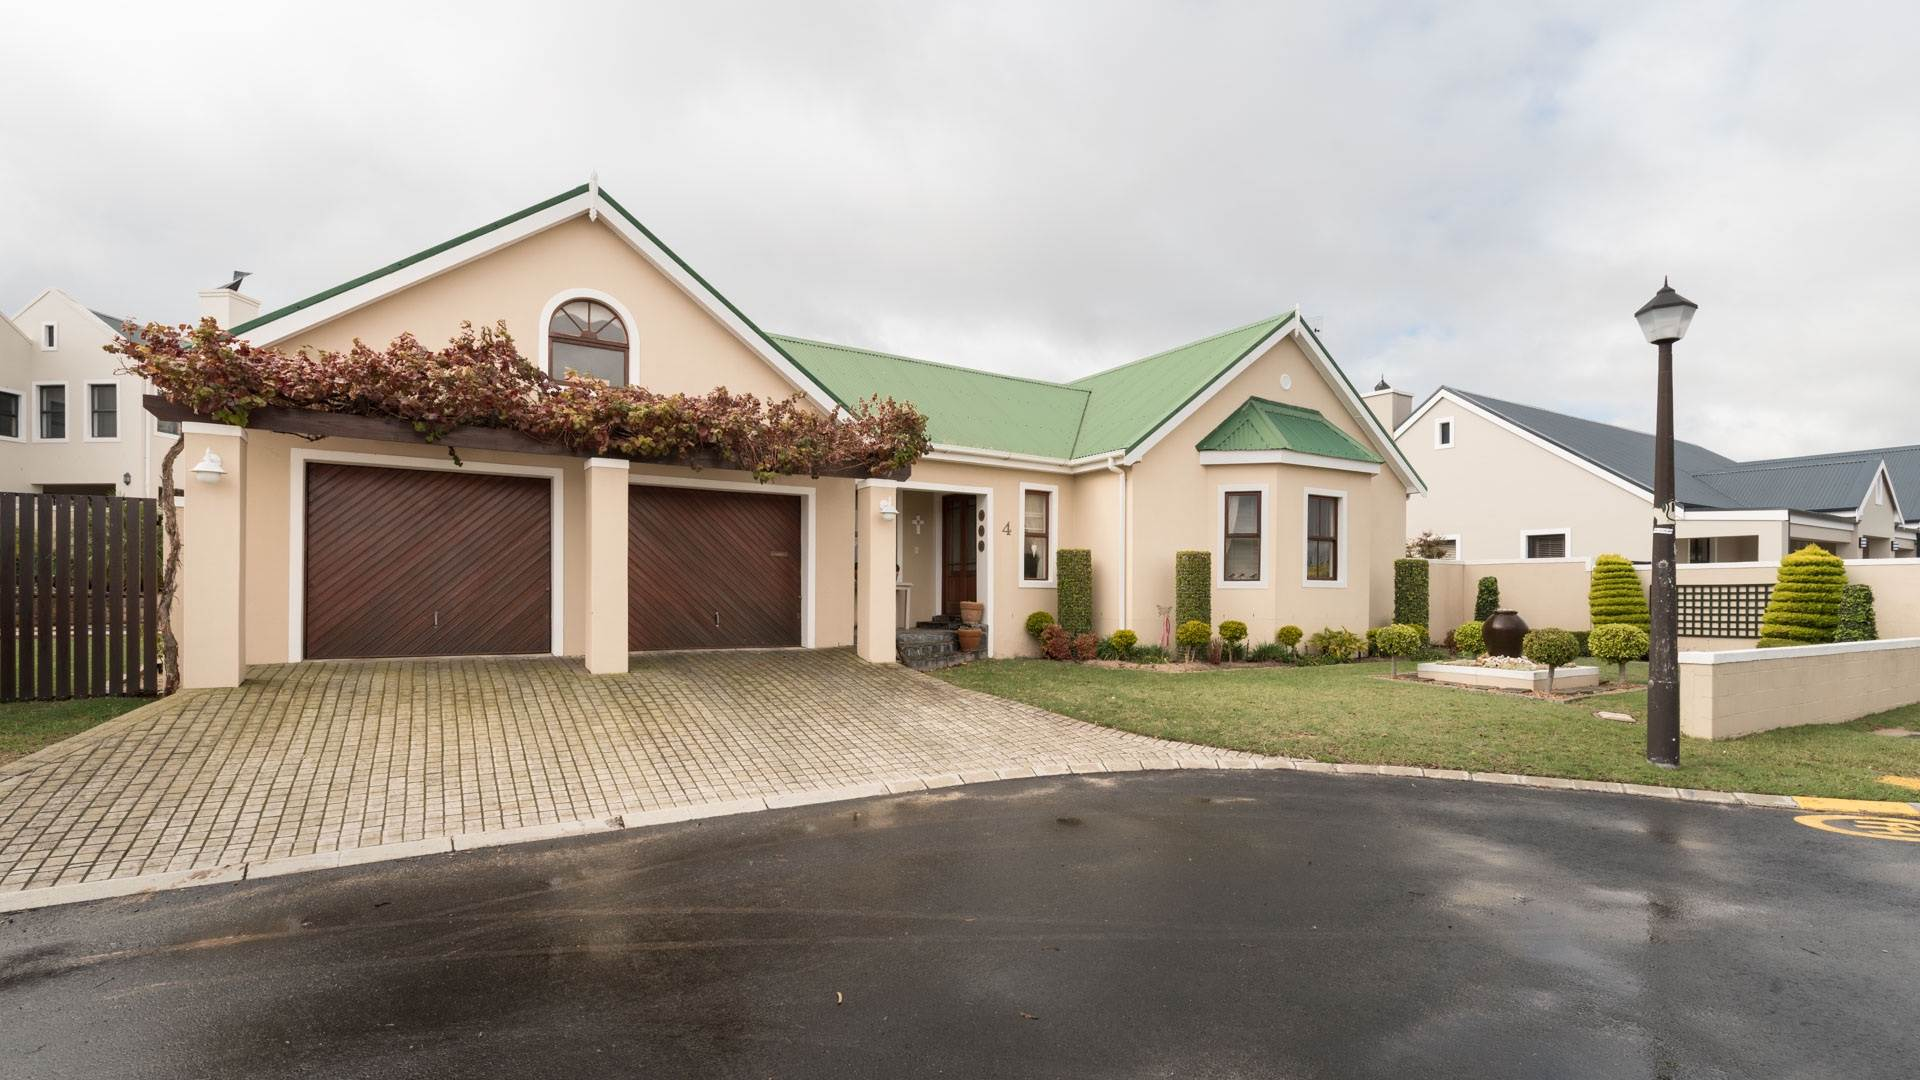 4 BedroomHouse For Sale In Zevendal